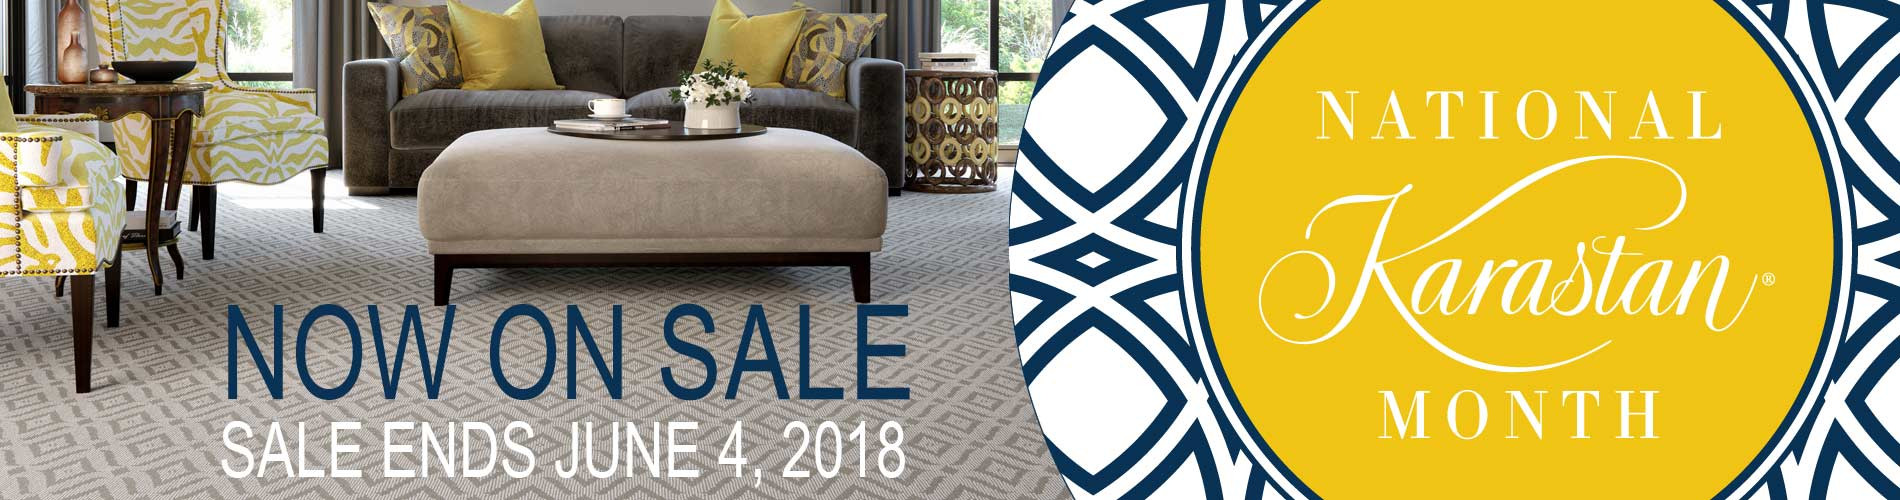 National Karastan Month | Sale Ends June 4, 2018